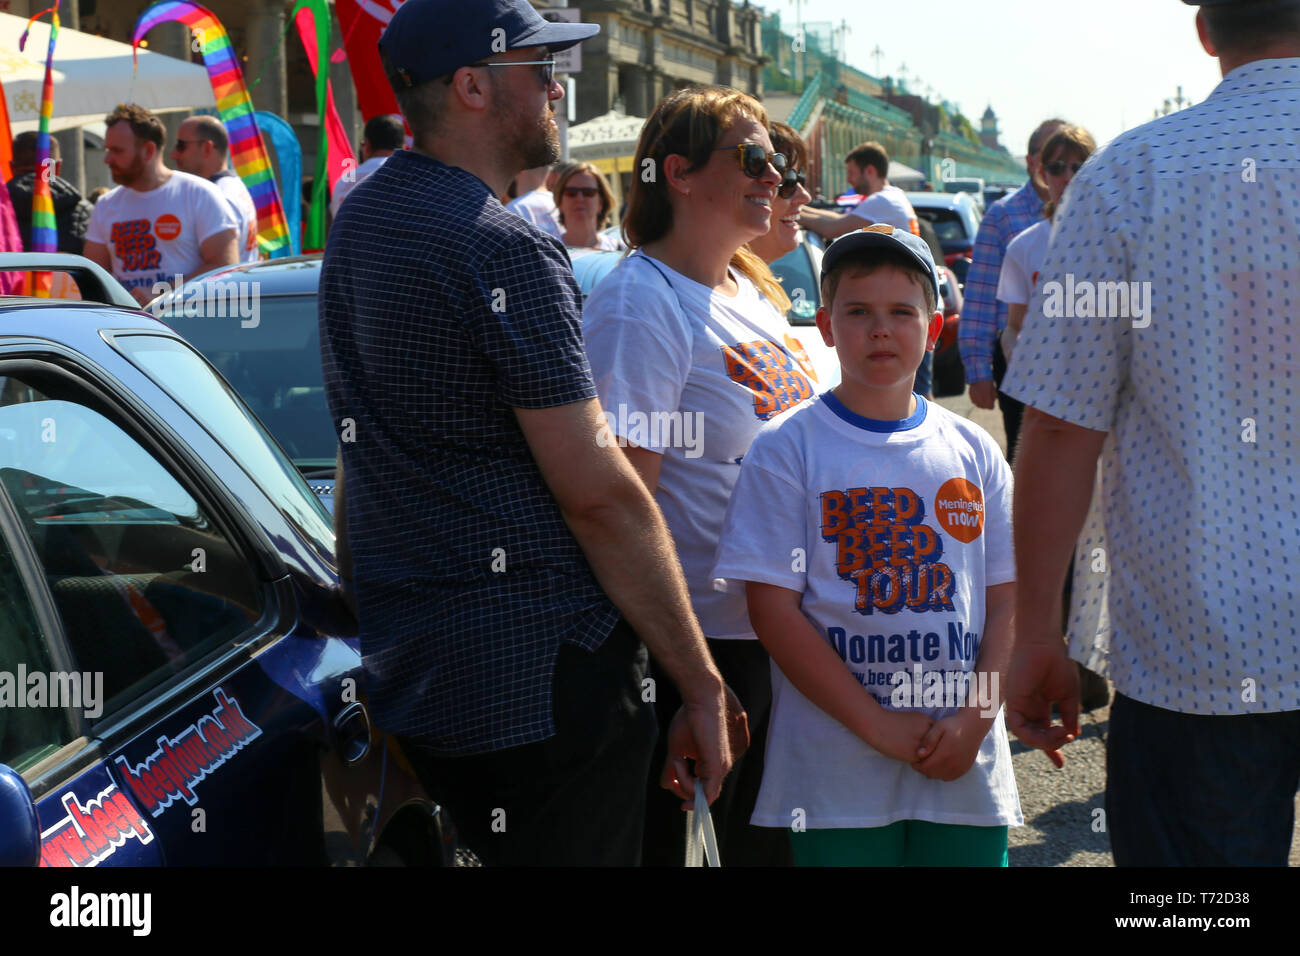 Little boy looking the camera, part of the cars competition team charity beep beep tour. Raising Awareness for Meningitis, Brighton. Easter 2019 - Stock Image